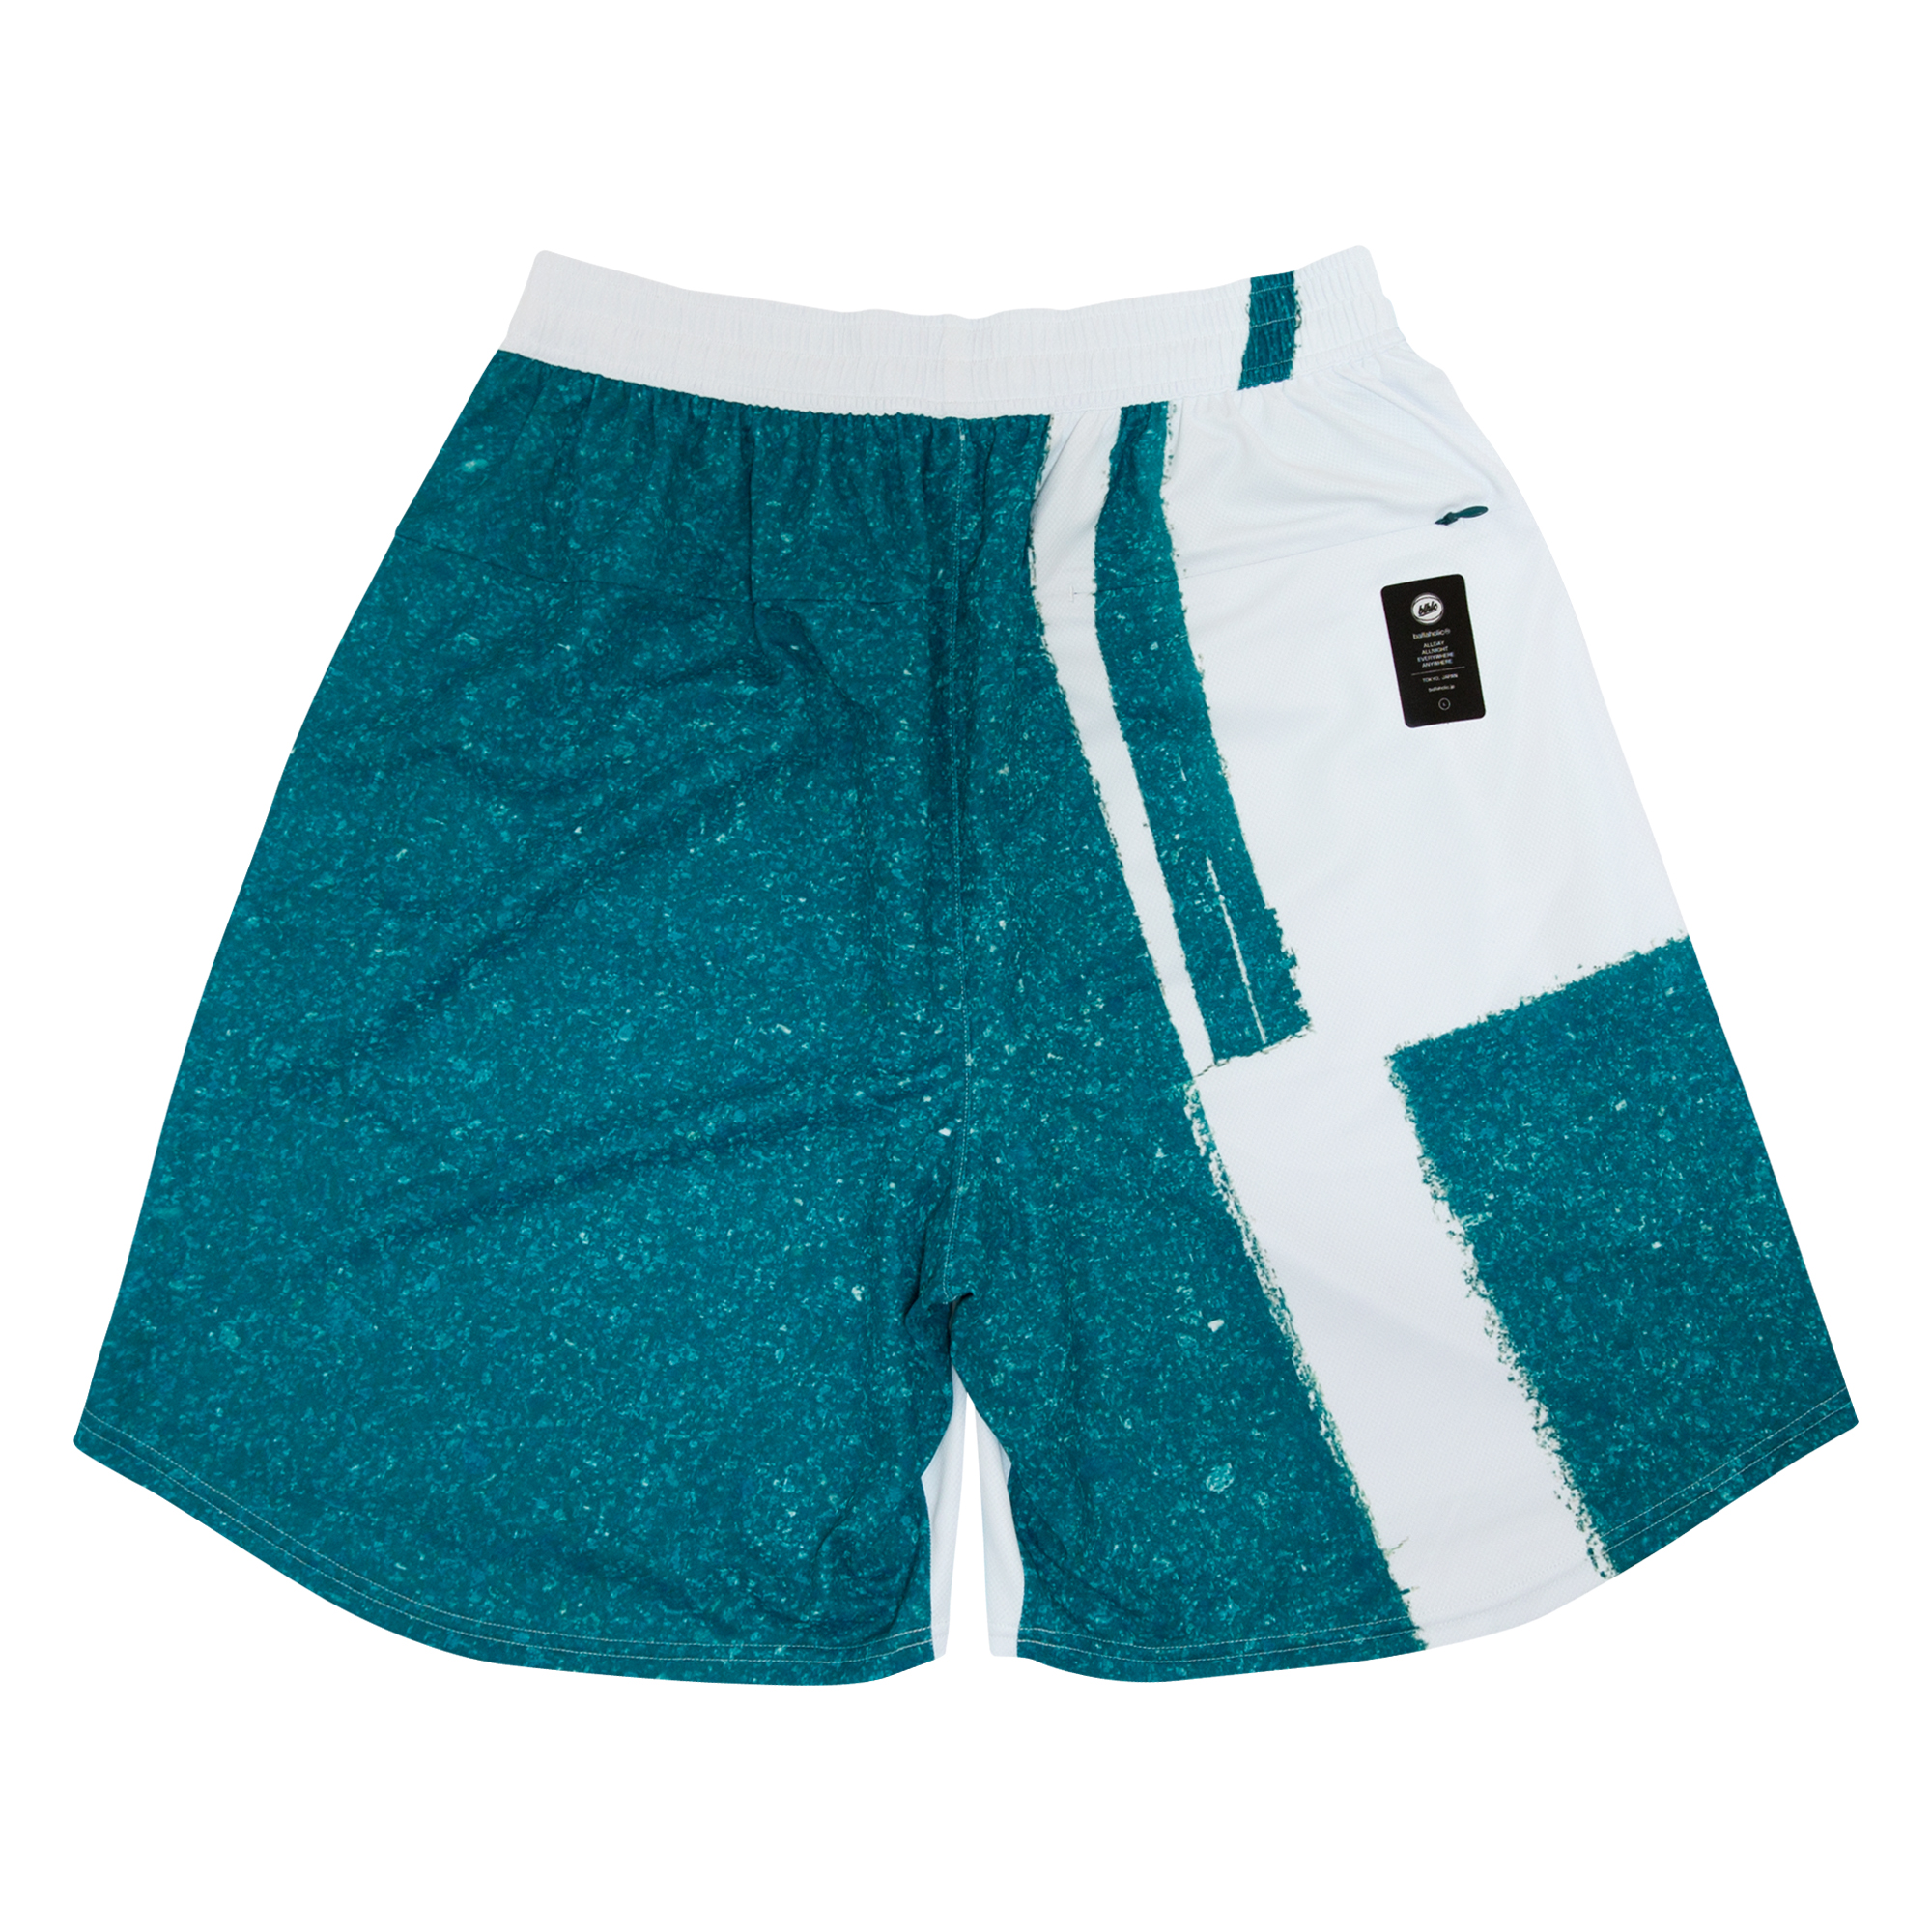 ballaholic【Playground Zip Shorts】